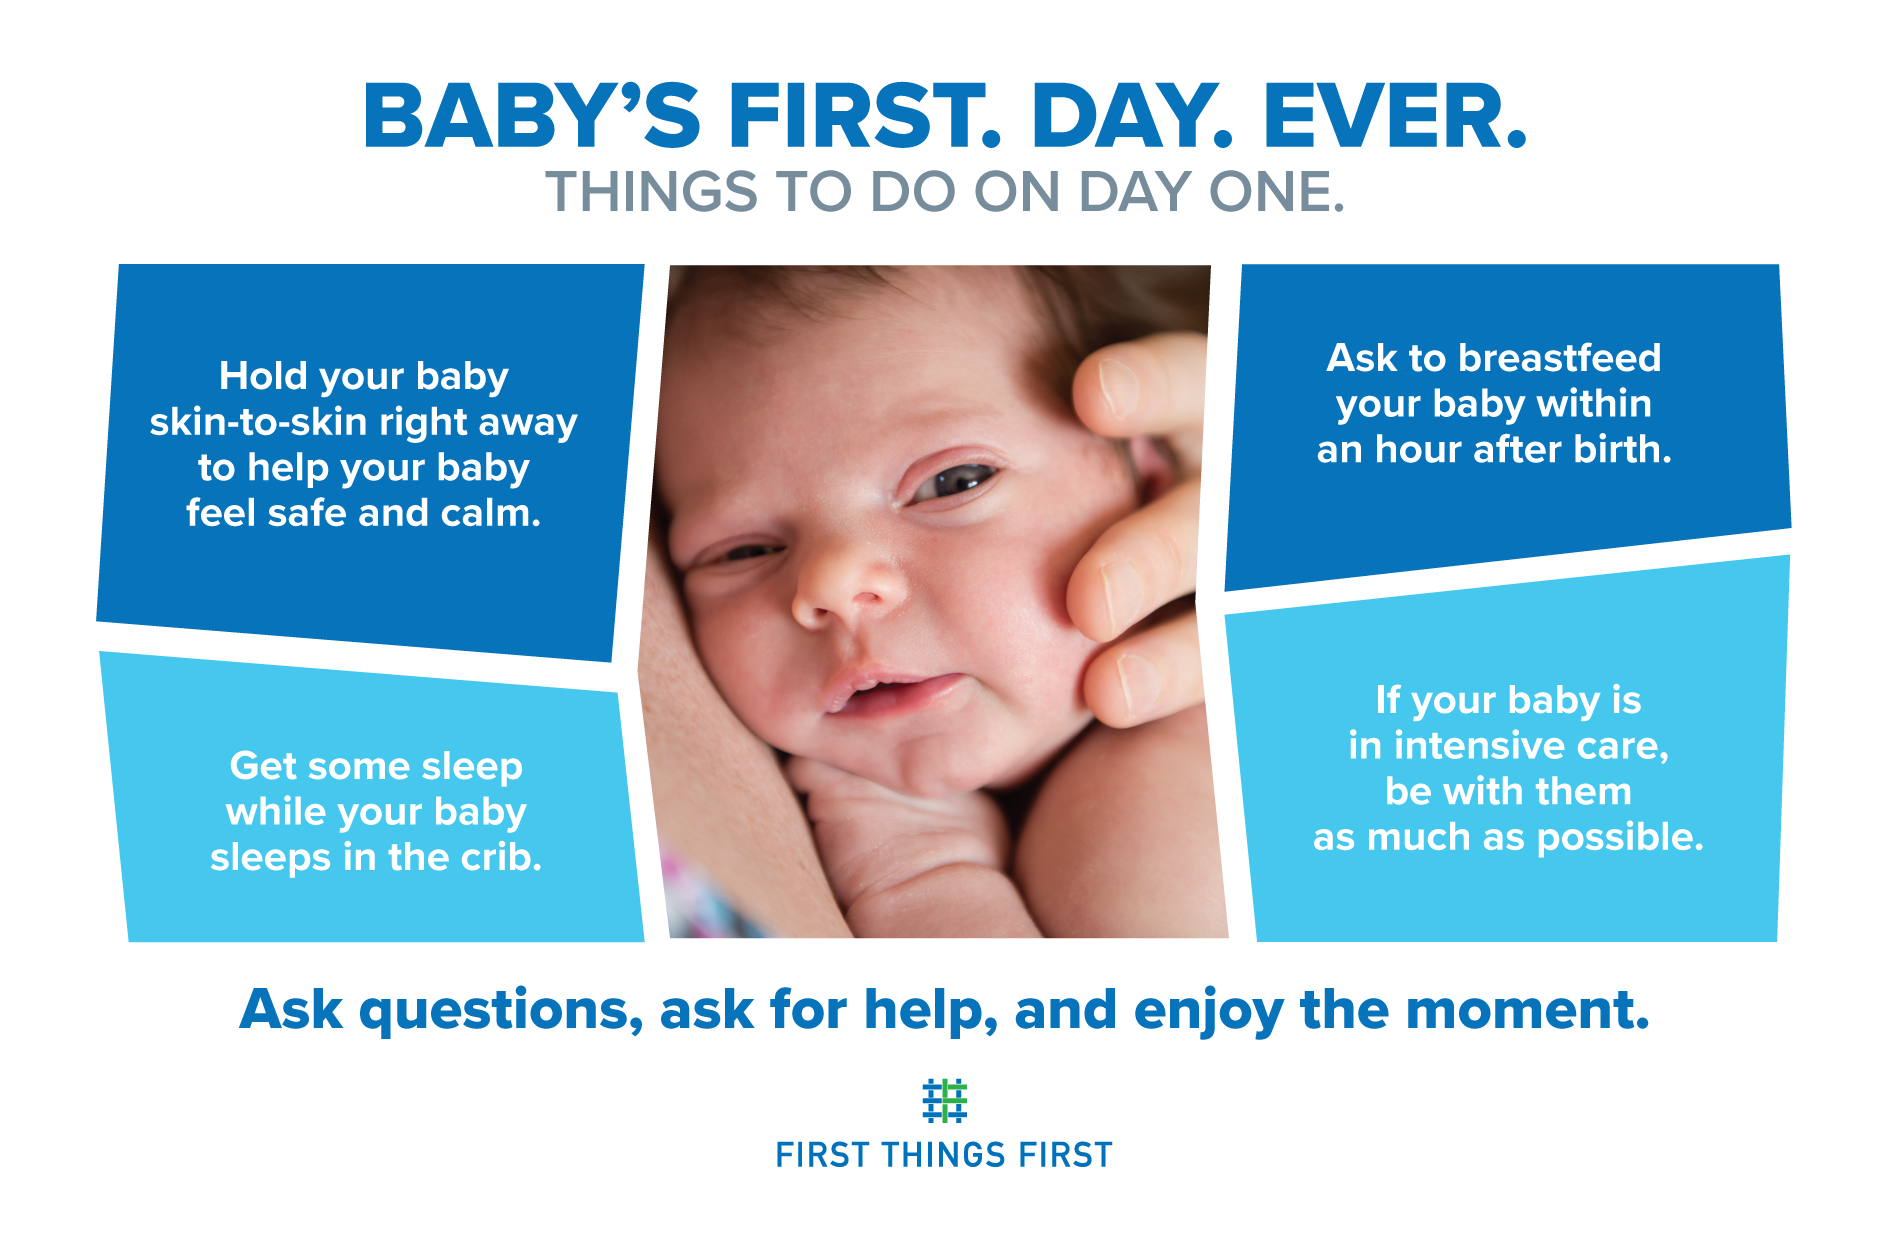 Things to do on baby's first day